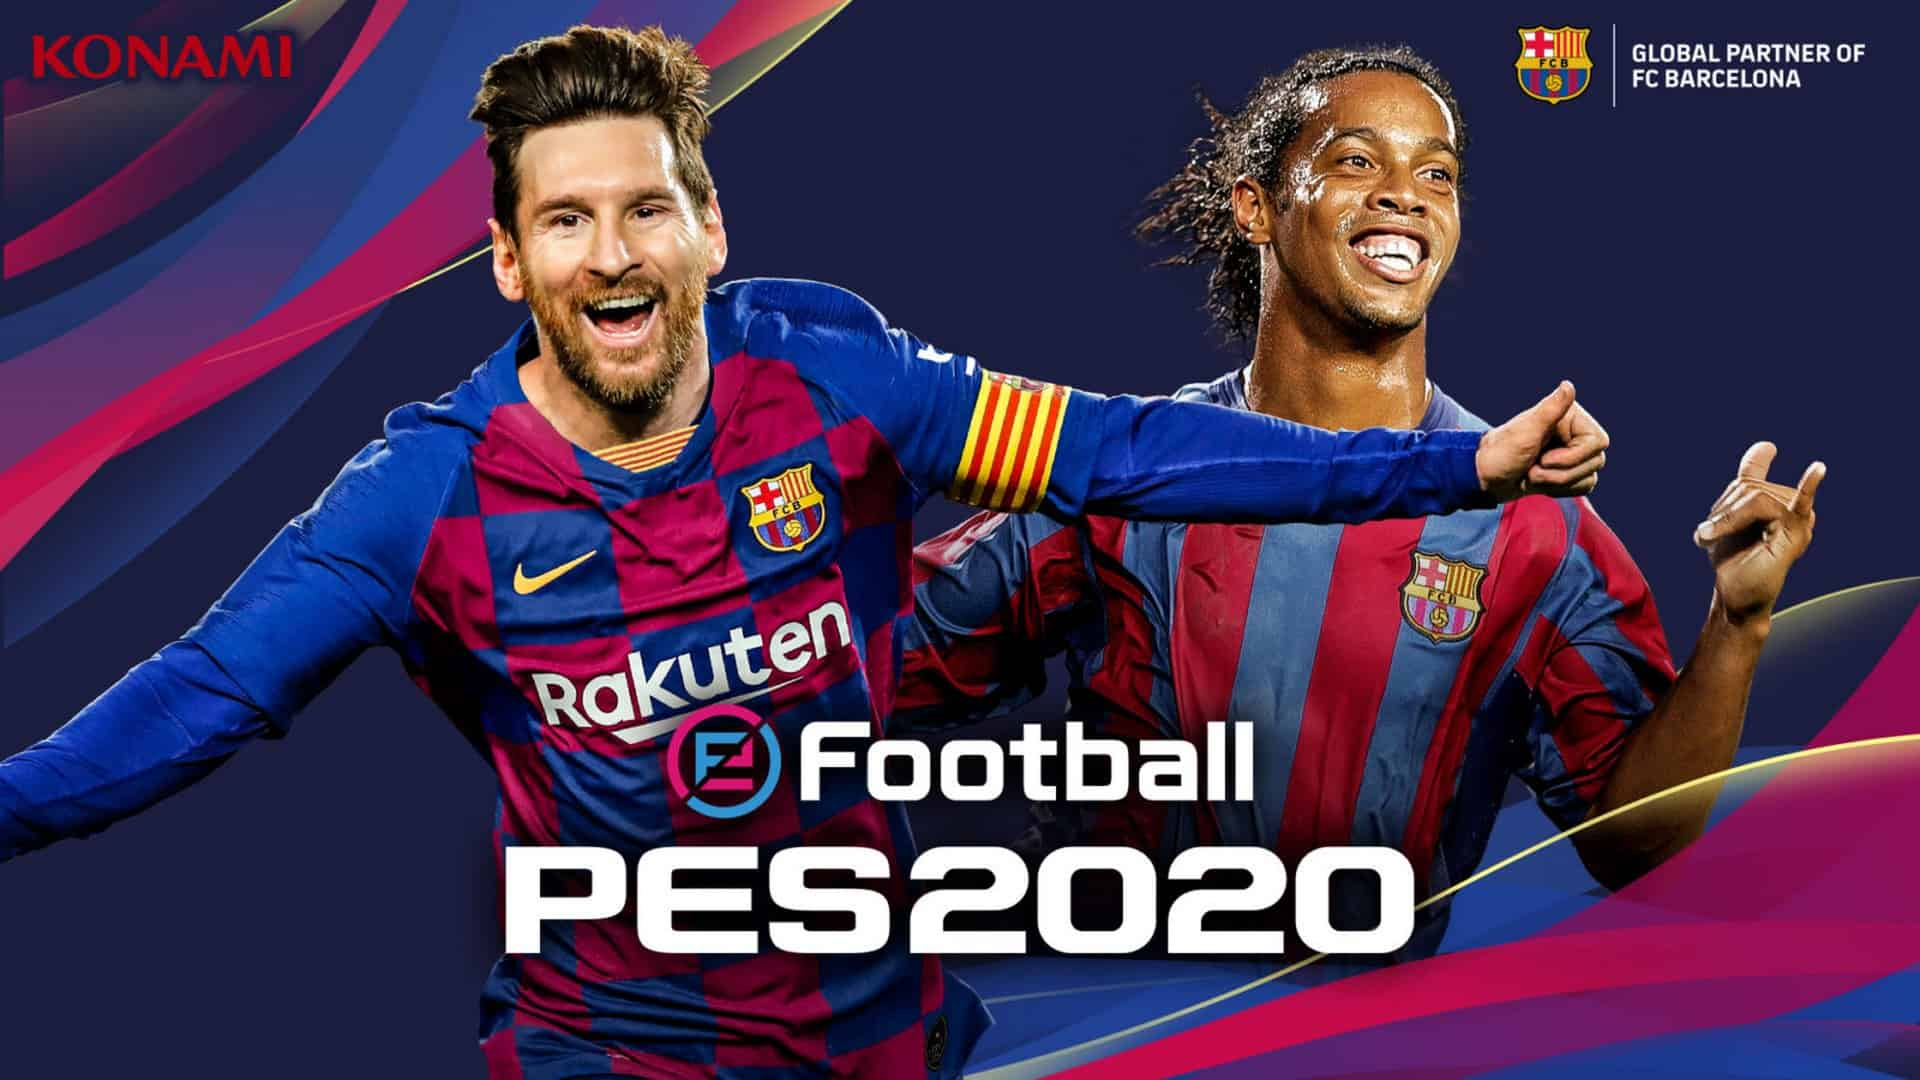 The Next Evolution Of PES Is Here – eFootball PES 2020 Announced